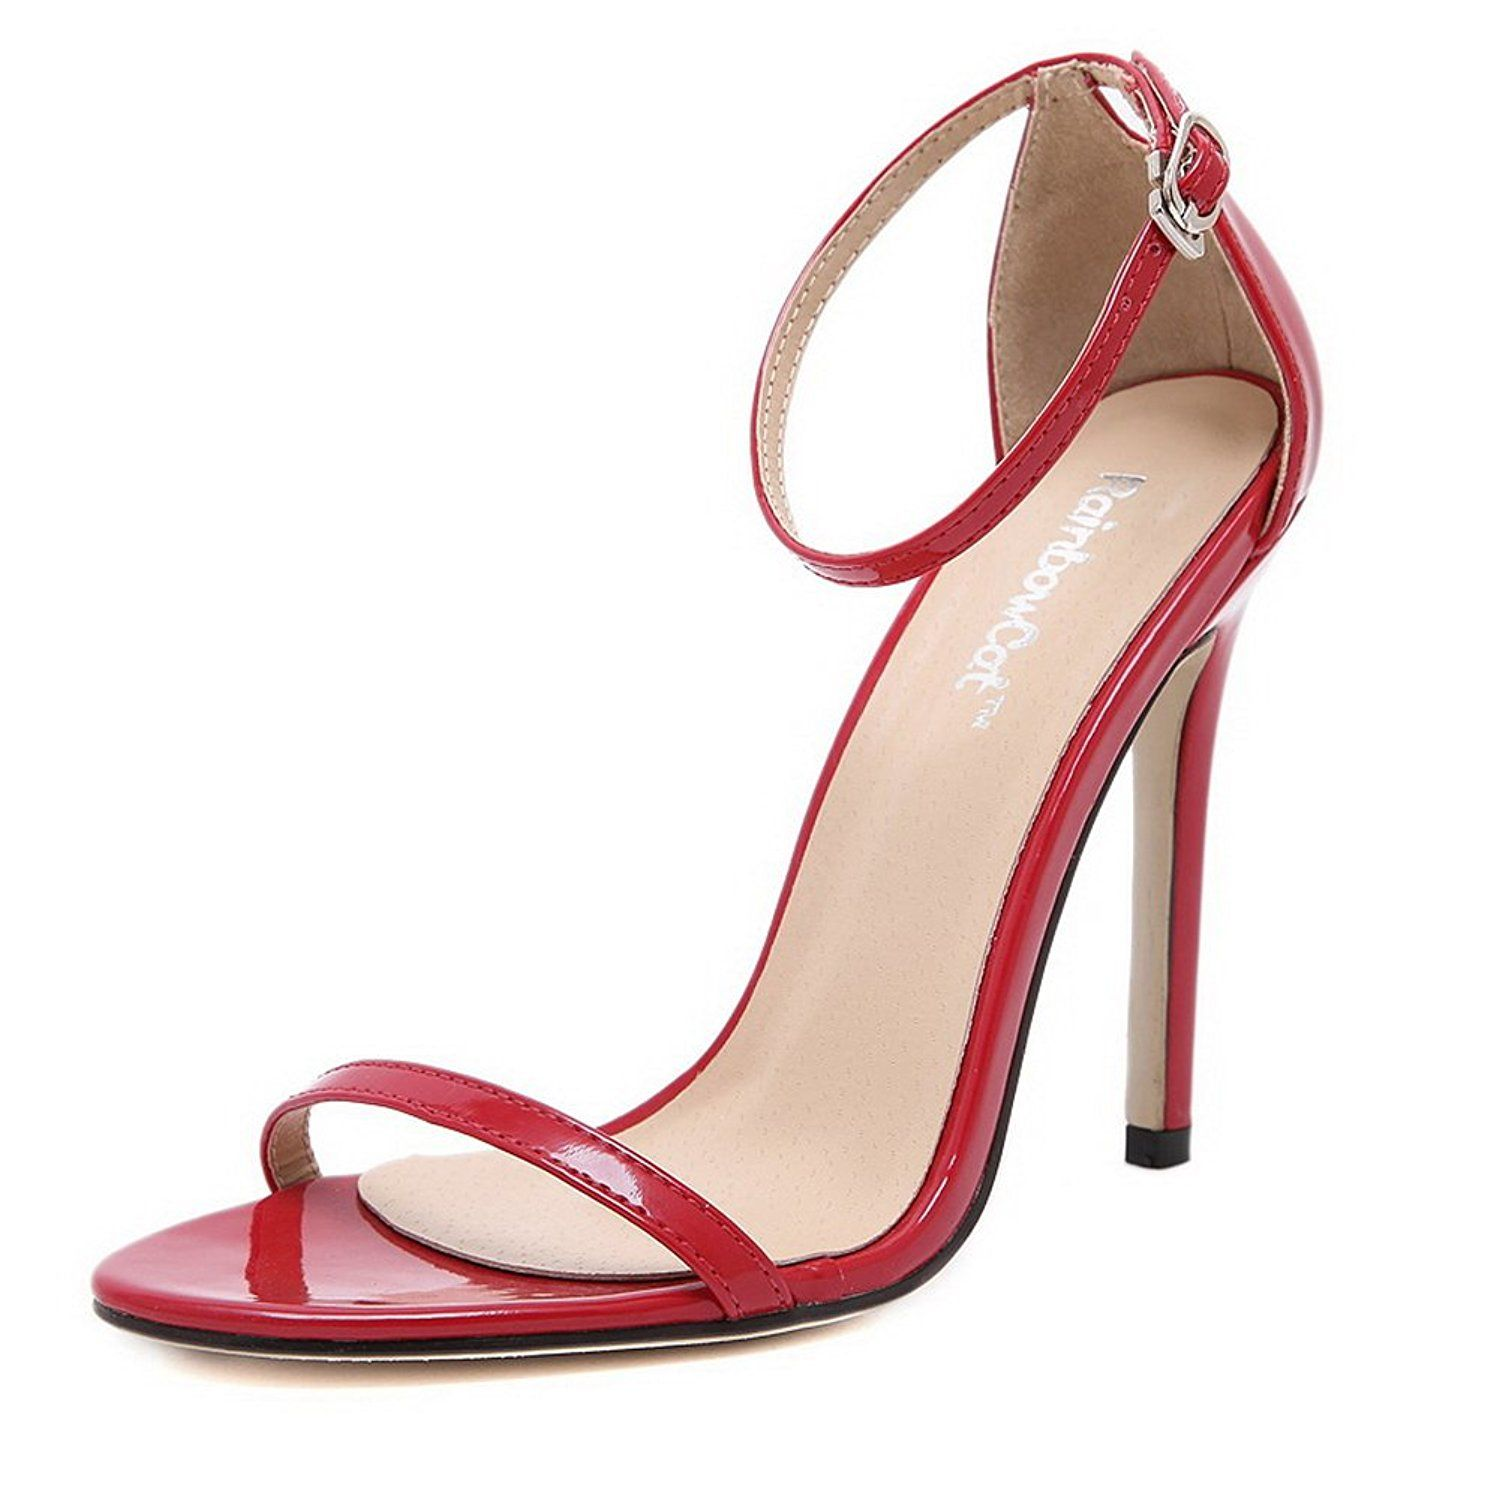 European sandals shoes - Balamasa Ladies Ankle Cuff Stiletto European Style Cow Leather Sandals Review More Details Here